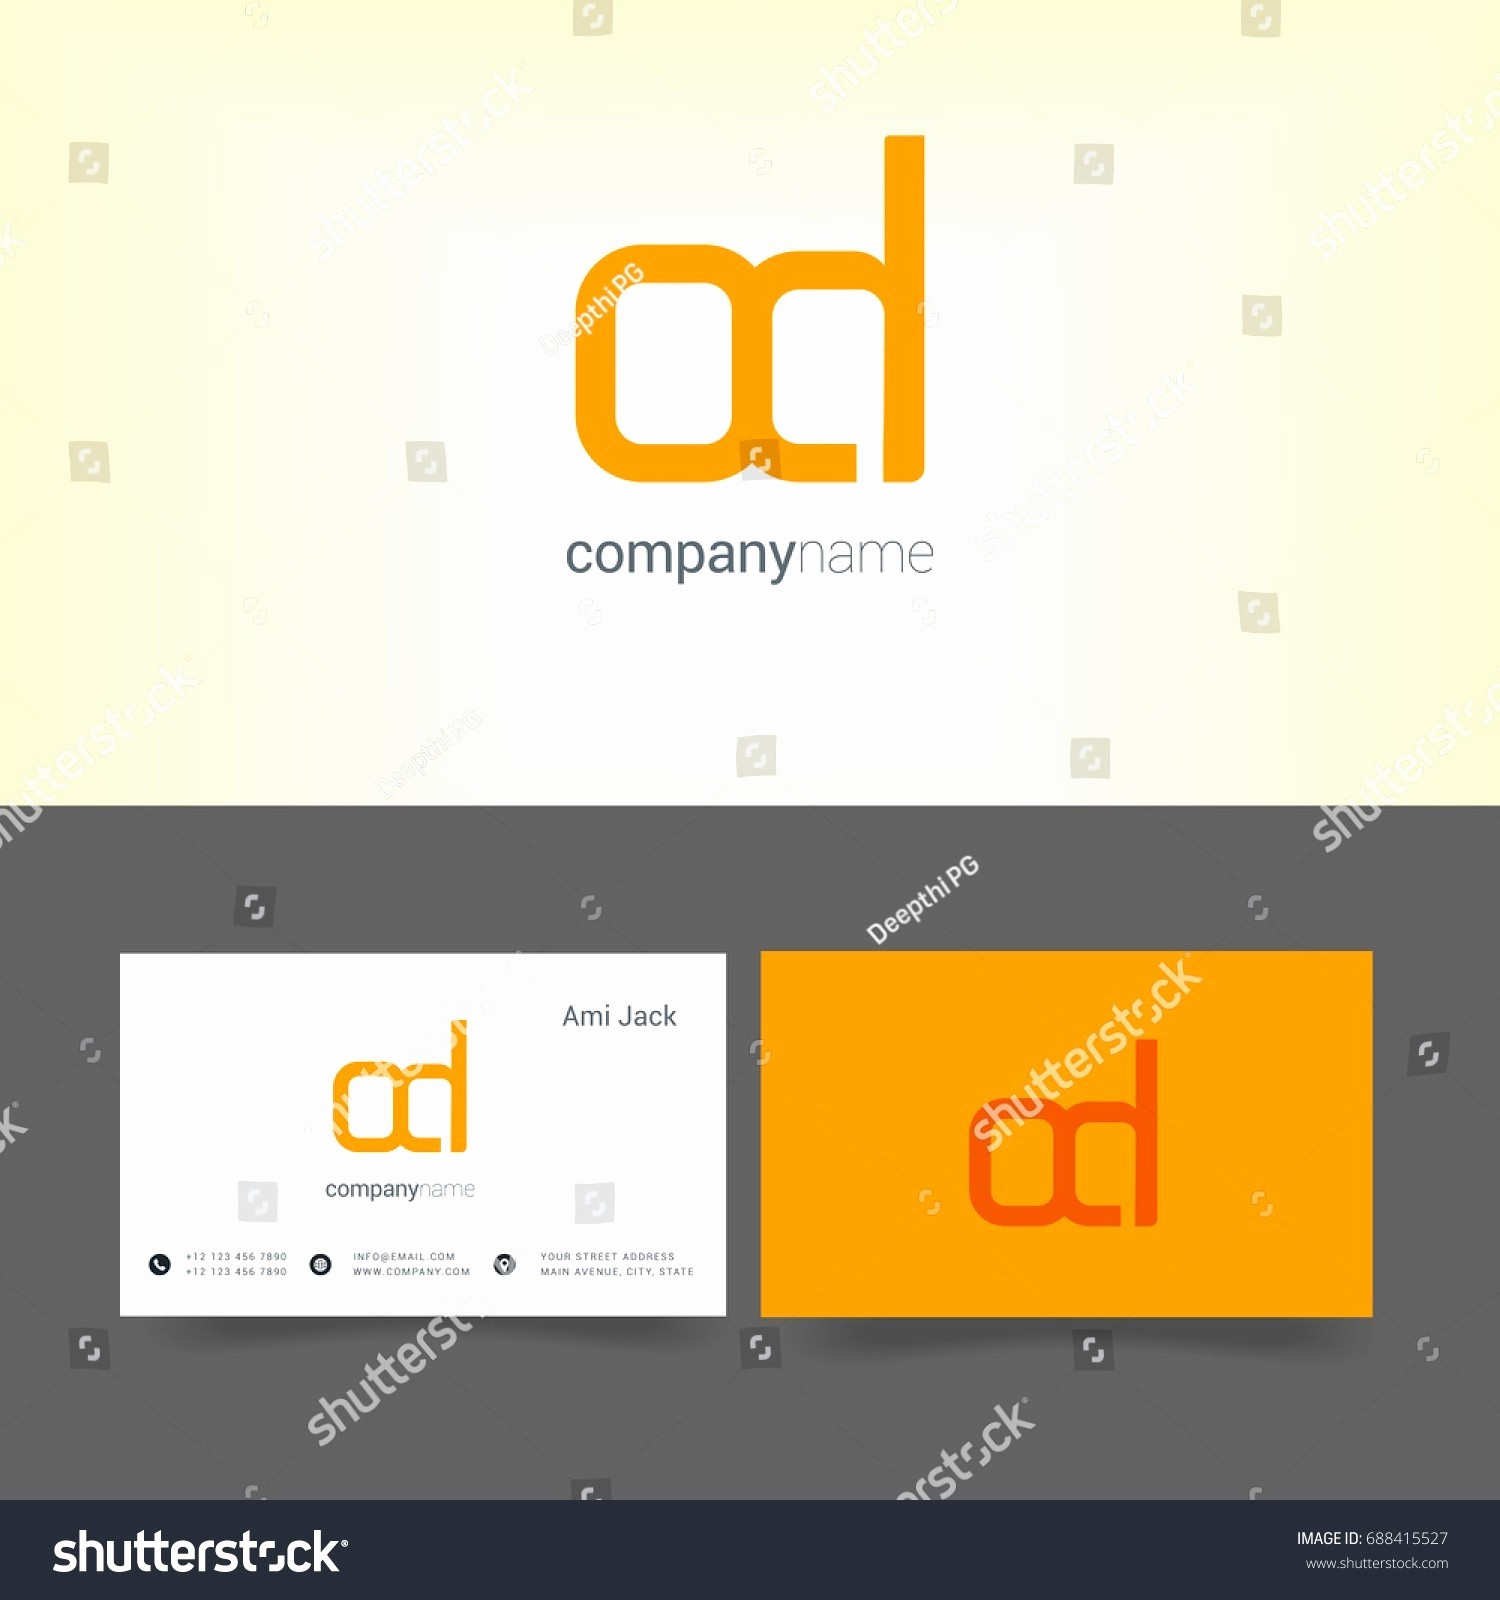 Royal Brites Business Cards Templates Awesome 20 Business Card Maker Template New Avery Business Card